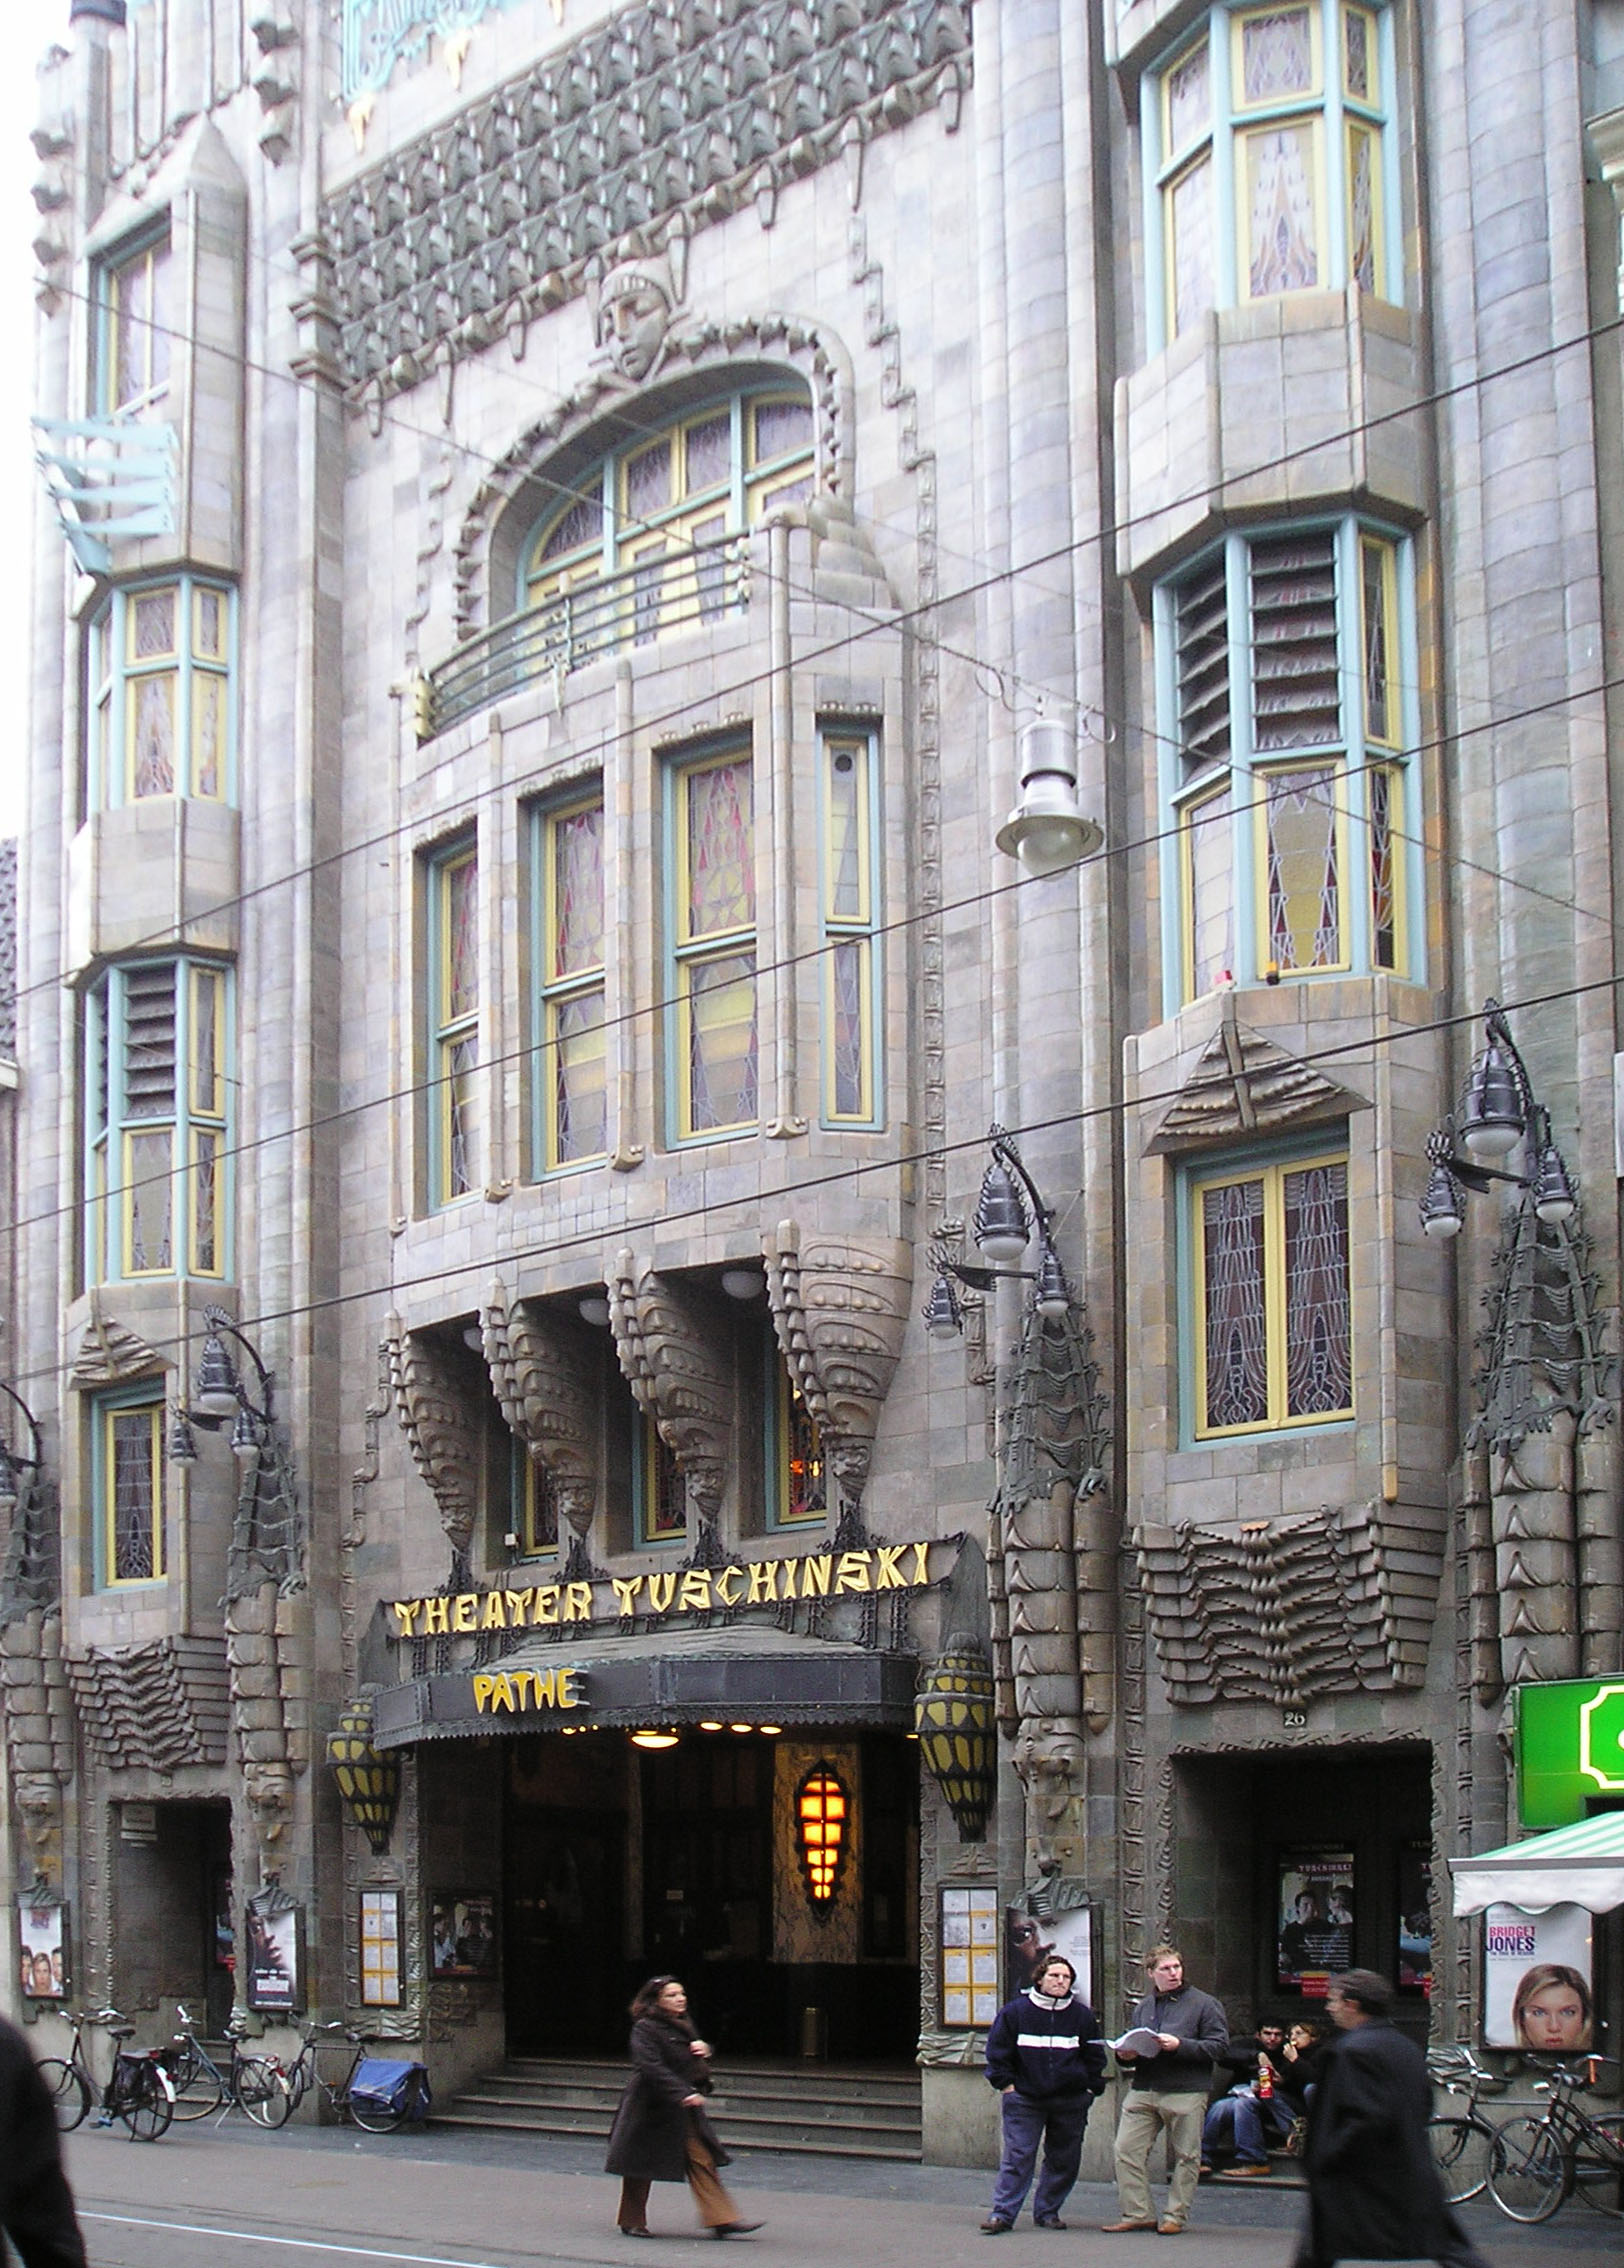 Tuschinski bioscoop Reguliersbreestraat 26-28